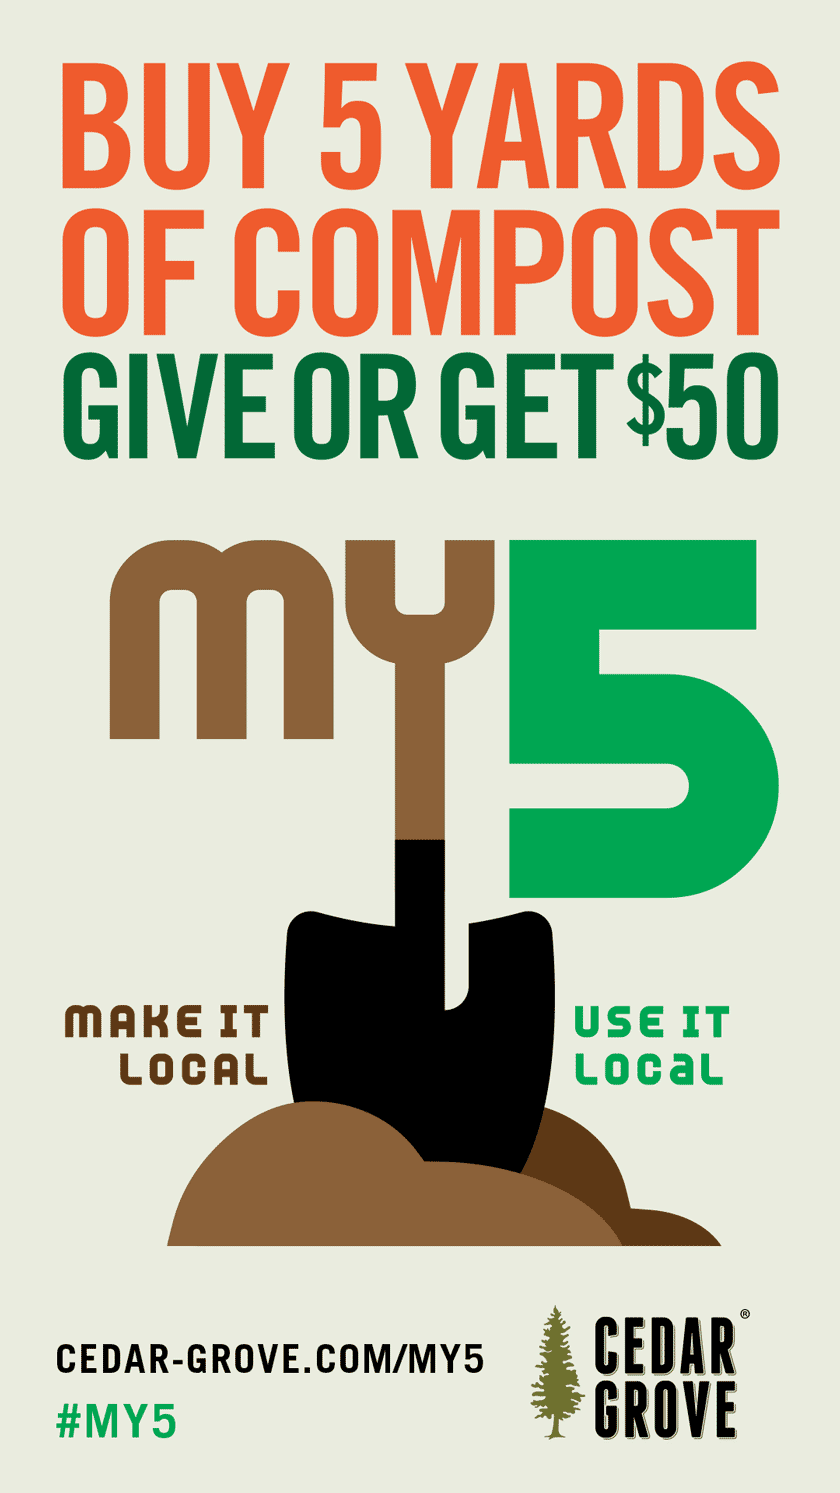 Infographic: Buy 5 or more yards of compost and Cedar Grove will donate $50 to your favorite local nonprofit